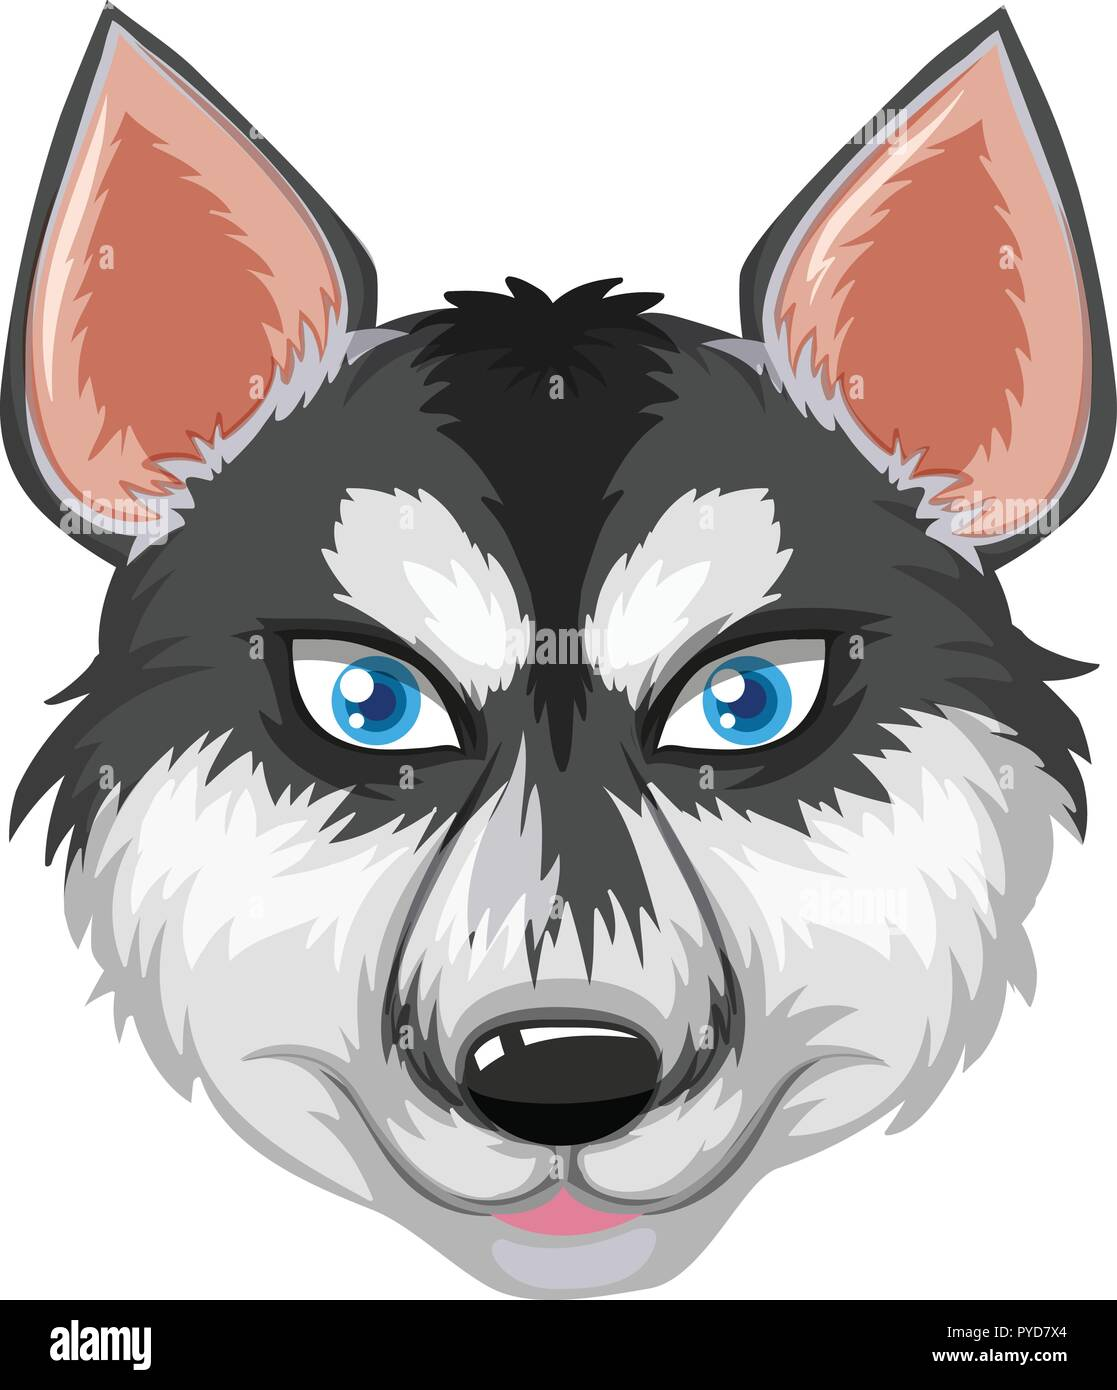 Face of siberian husky illustration - Stock Vector